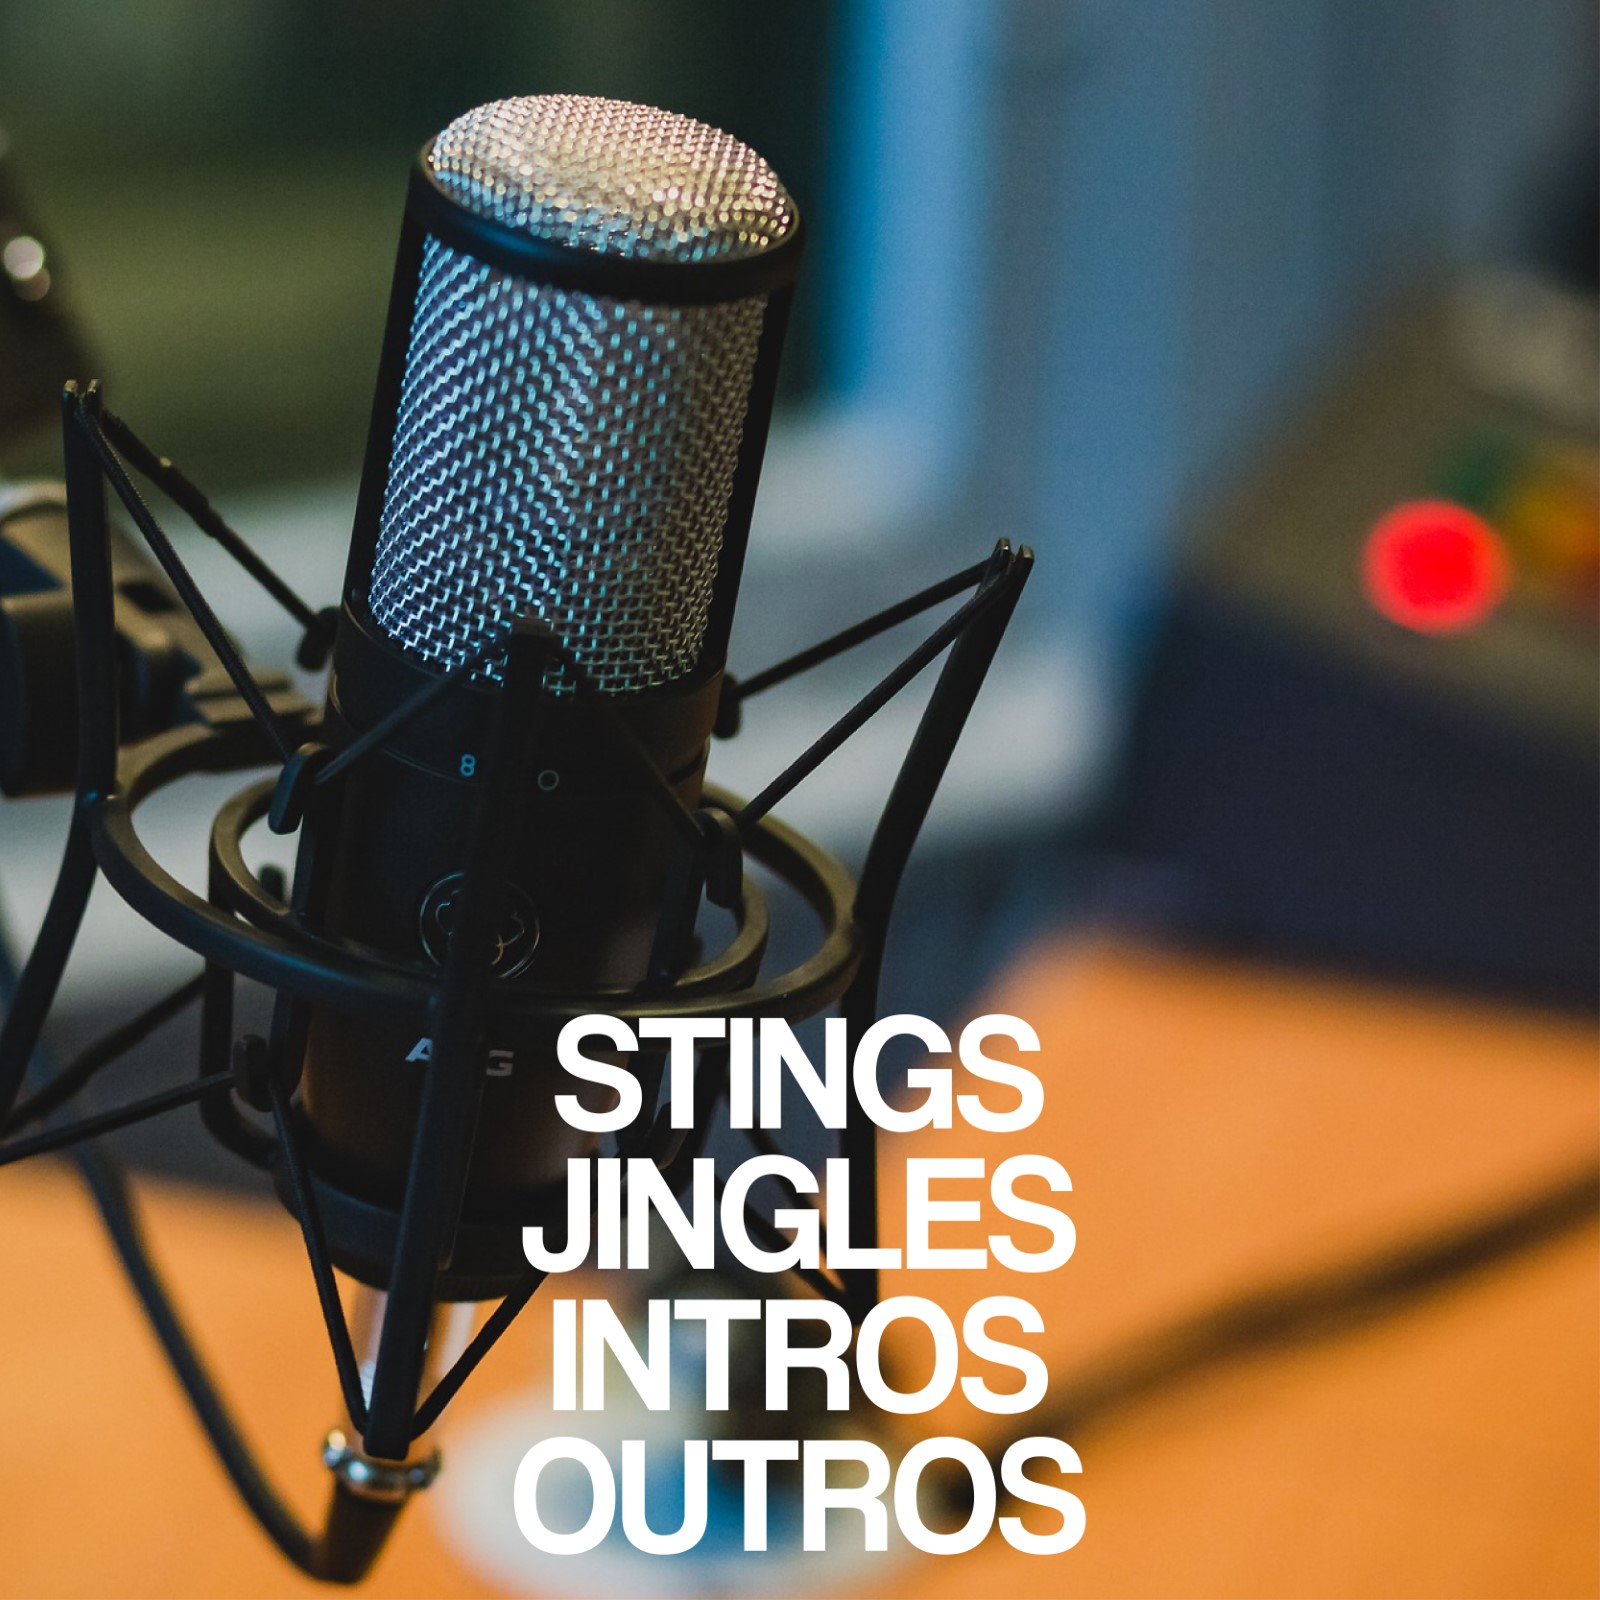 - Here you can find perfect intros/outros for your show, as well as musical stings specially written for scene transitions.Short pieces only.